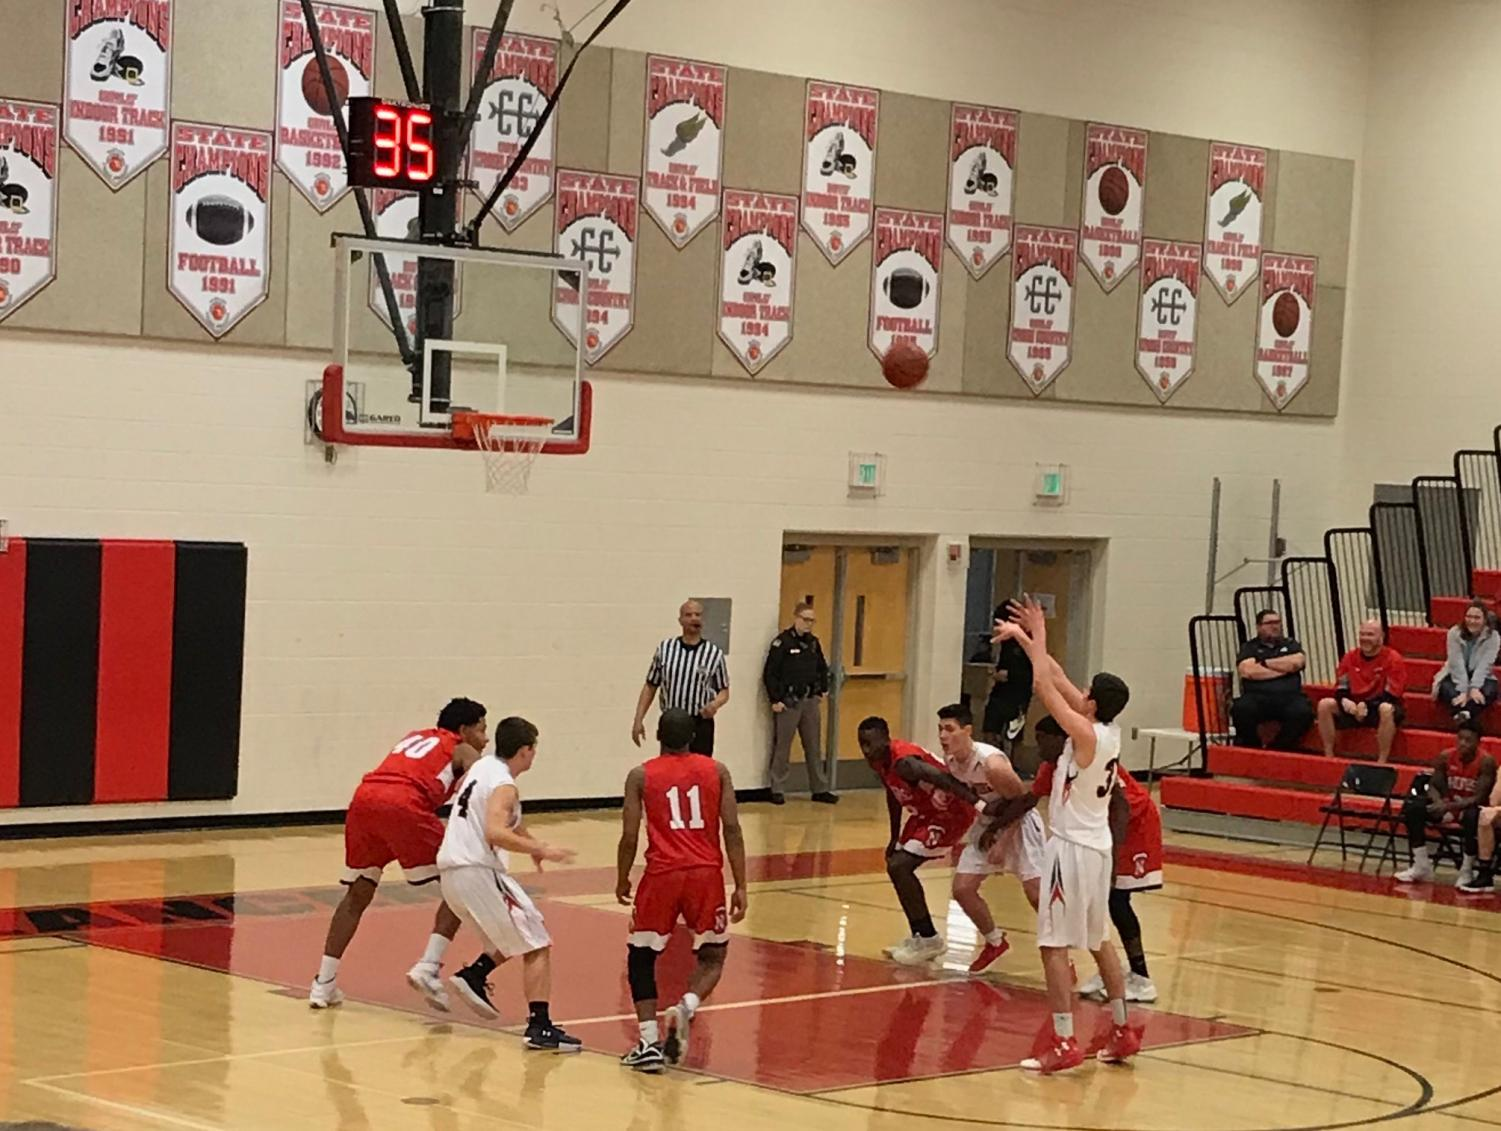 Senior Tommy Moyer shoots foul shot in game against North Hagerstown.